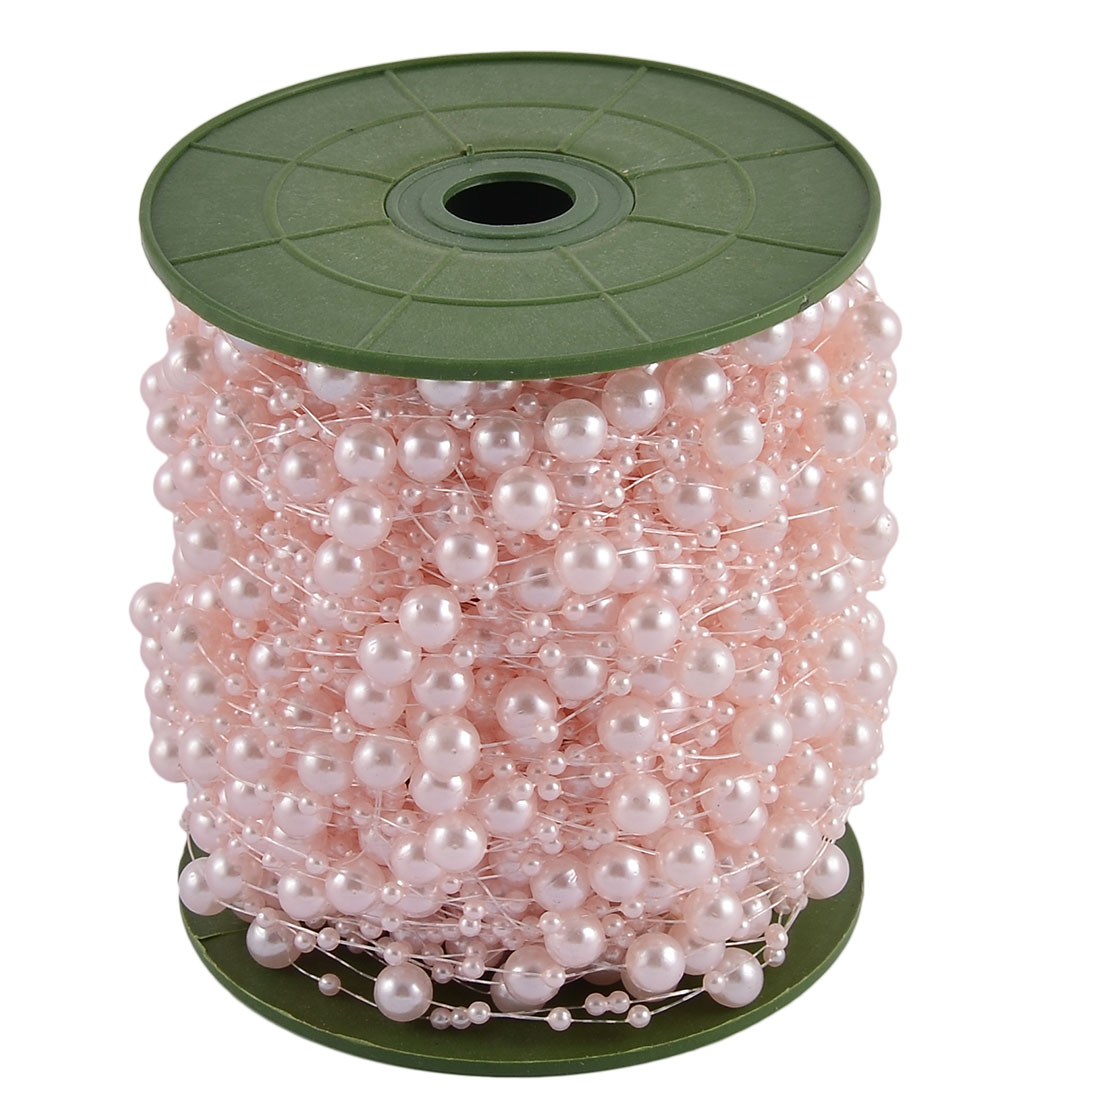 Wedding Party Crafting DIY Garland Flower Table Decoration Imitation Pearl Beads String Roll Light Pink